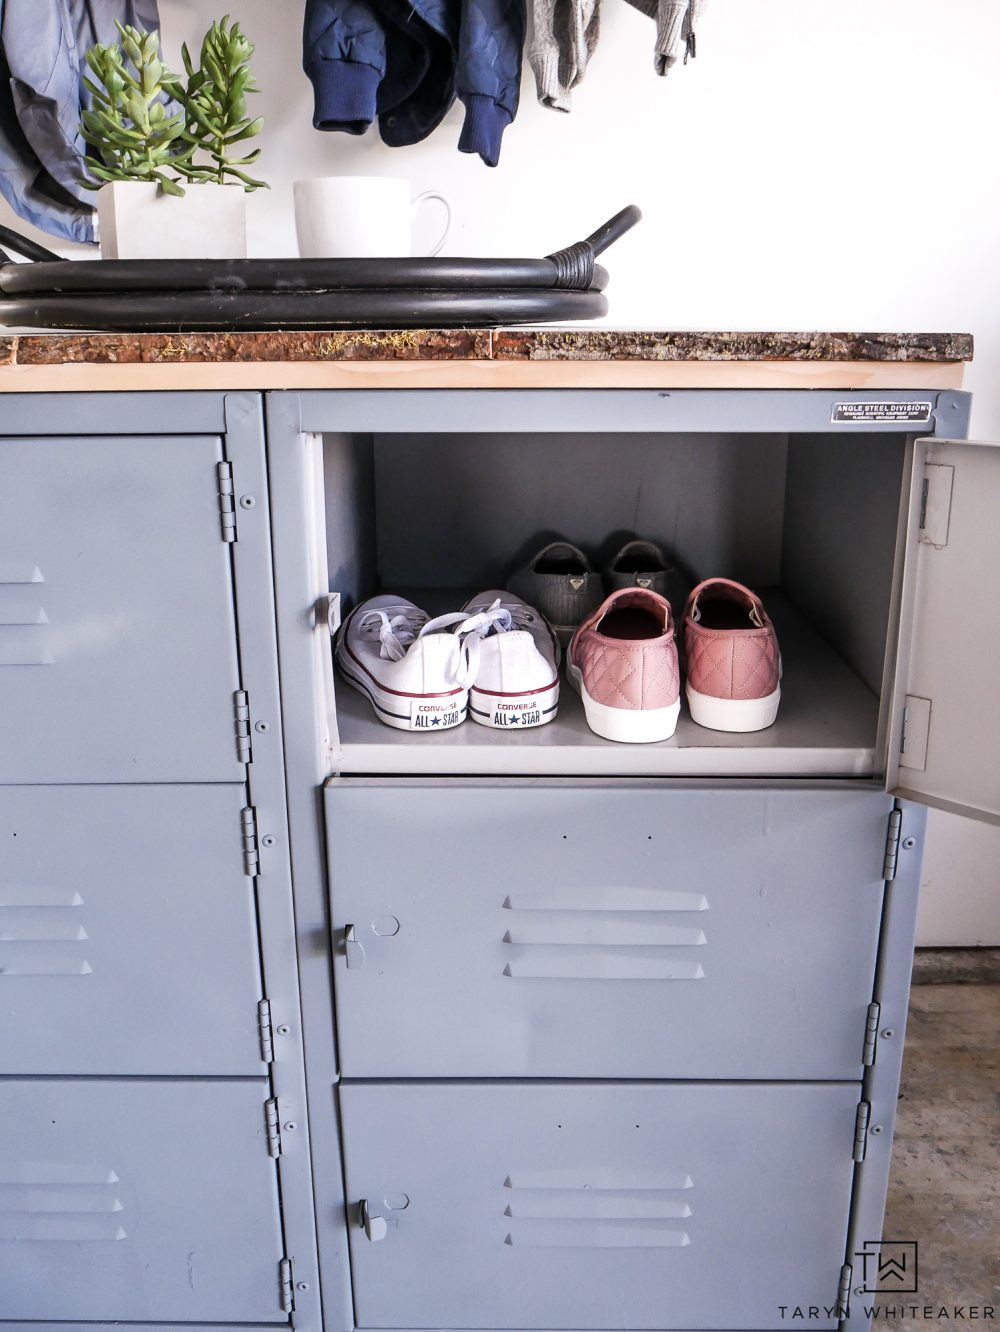 Get rid of those piles of shoes in the garage and help keep them organized with a cute locker system.